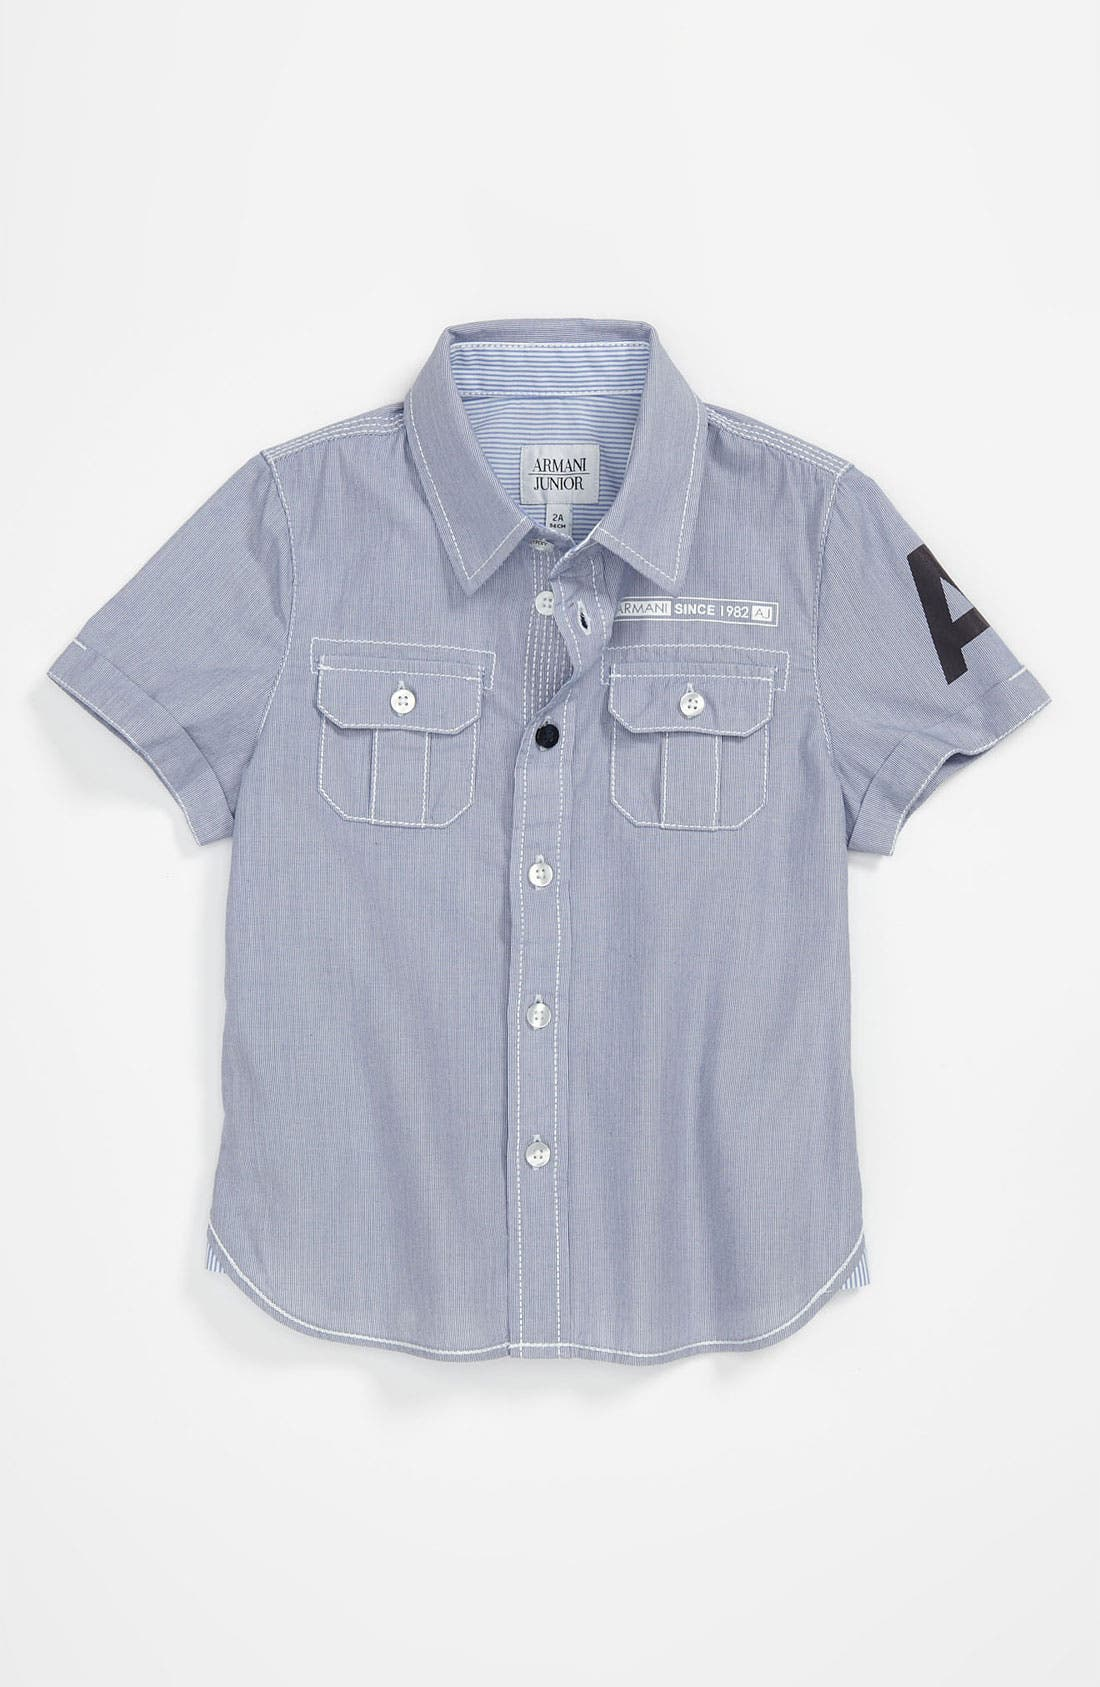 Main Image - Armani Junior Woven Shirt (Little Boys)